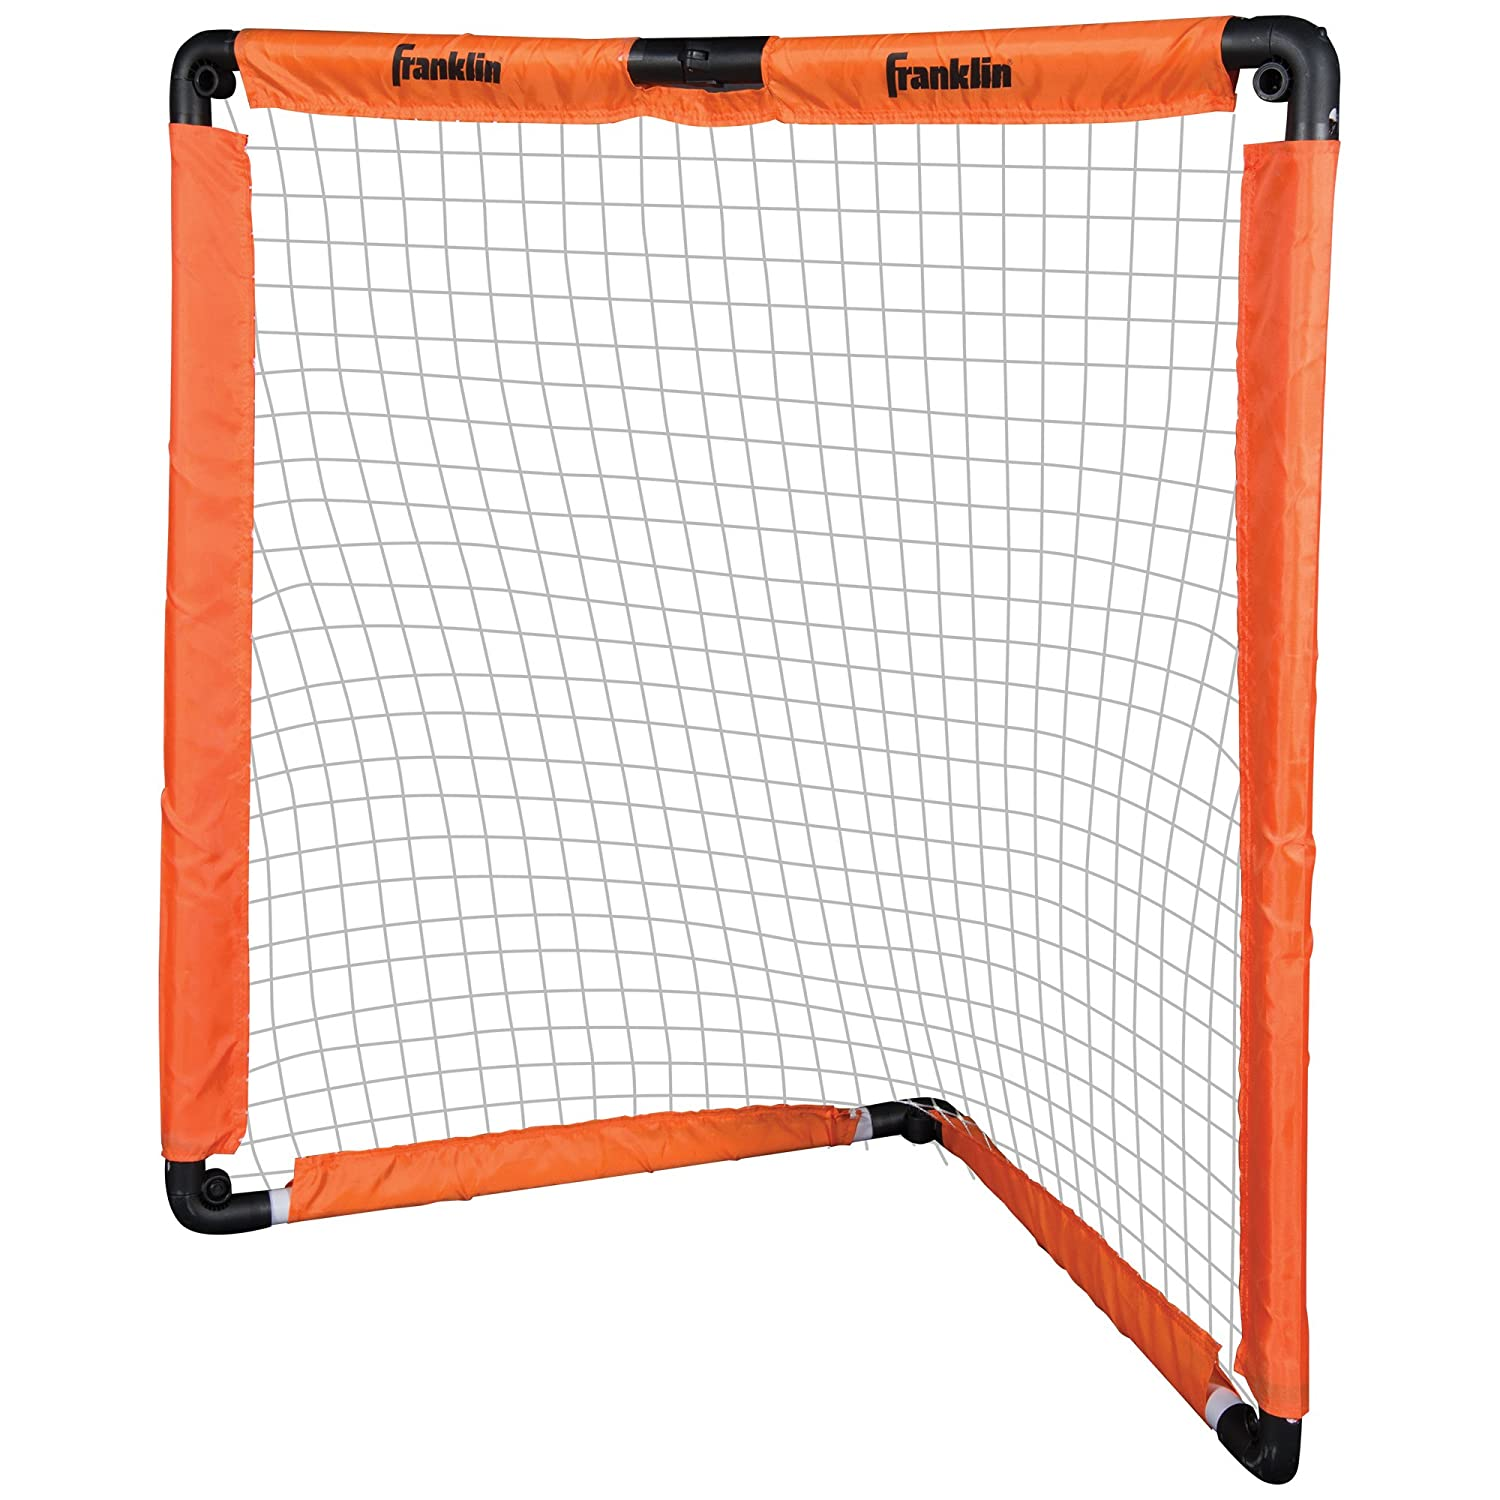 amazon com franklin sports youth insta set lacrosse goal